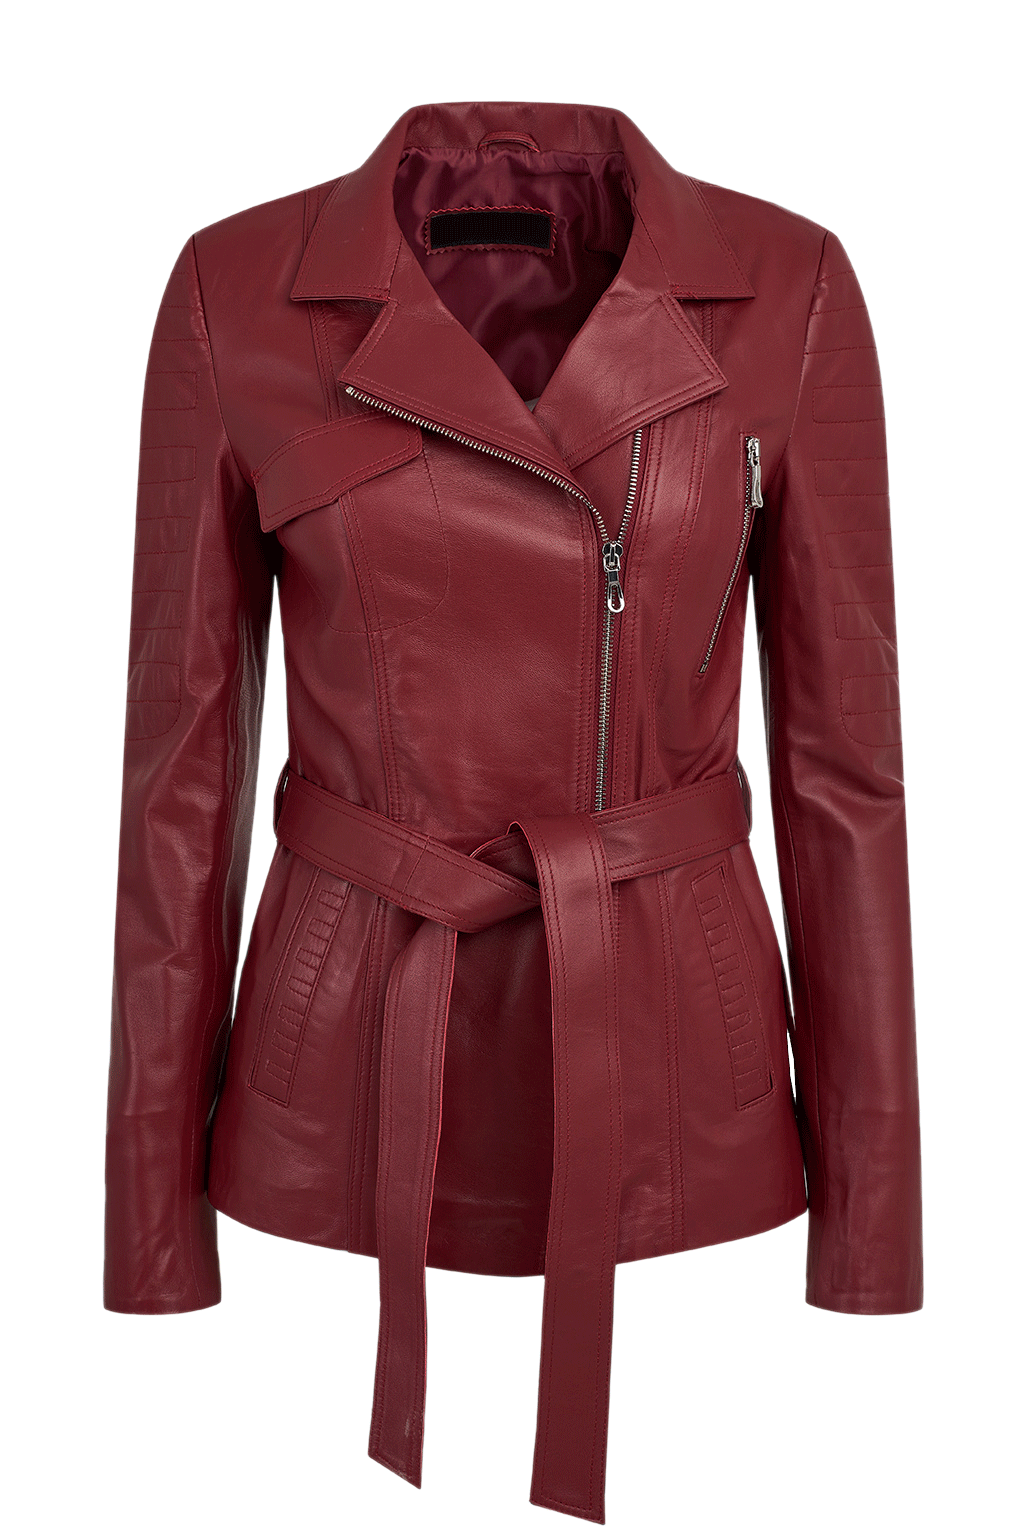 Women's Long Leather Jacket - Red